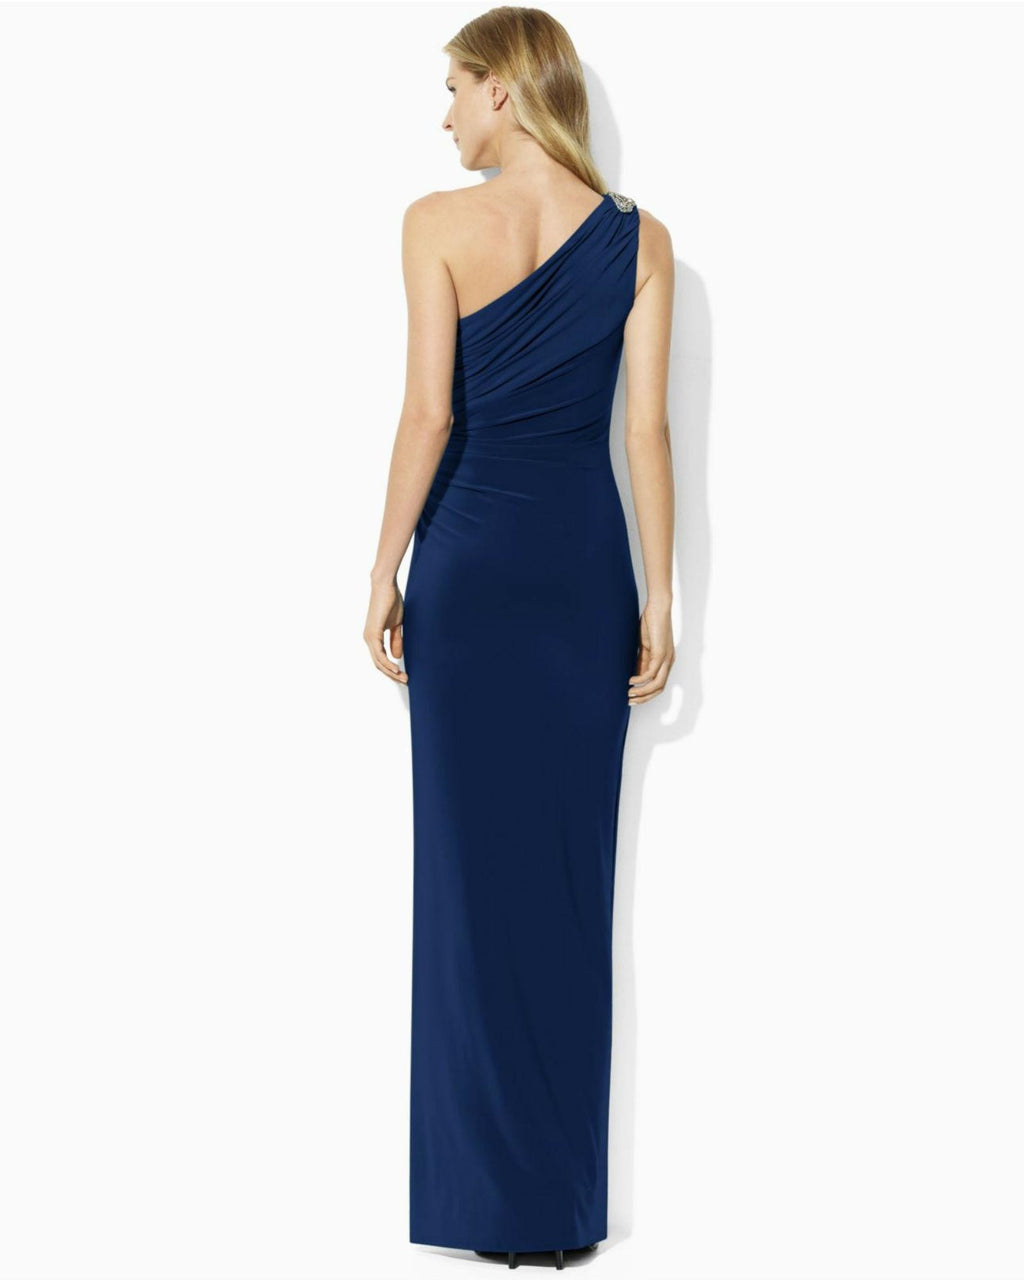 Lauren Ralph Lauren One-Shoulder Evening Gown-LAUREN RALPH LAUREN-Fashionbarn shop